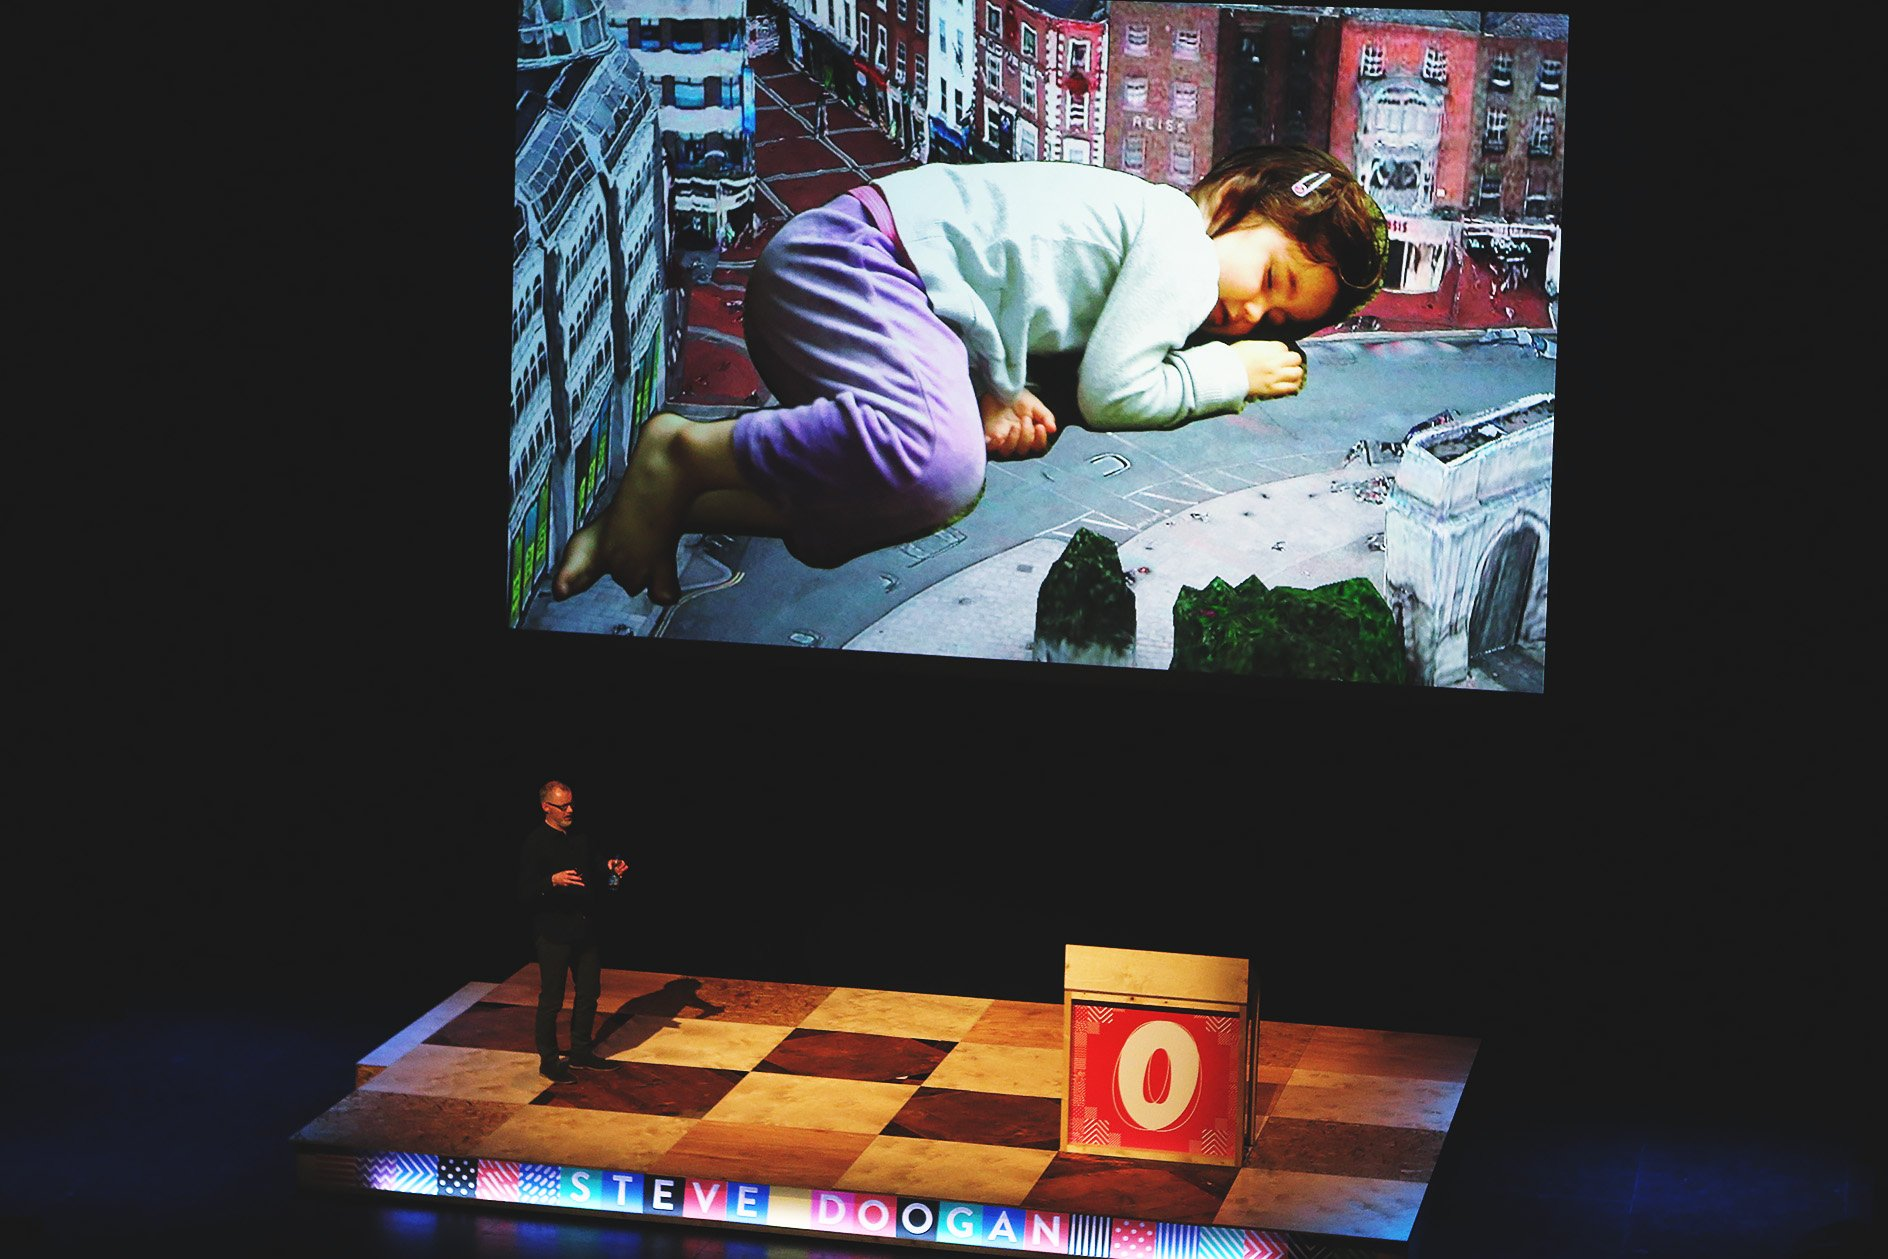 Steve Doogan at OFFSET 2015 – Composite photo and illustration